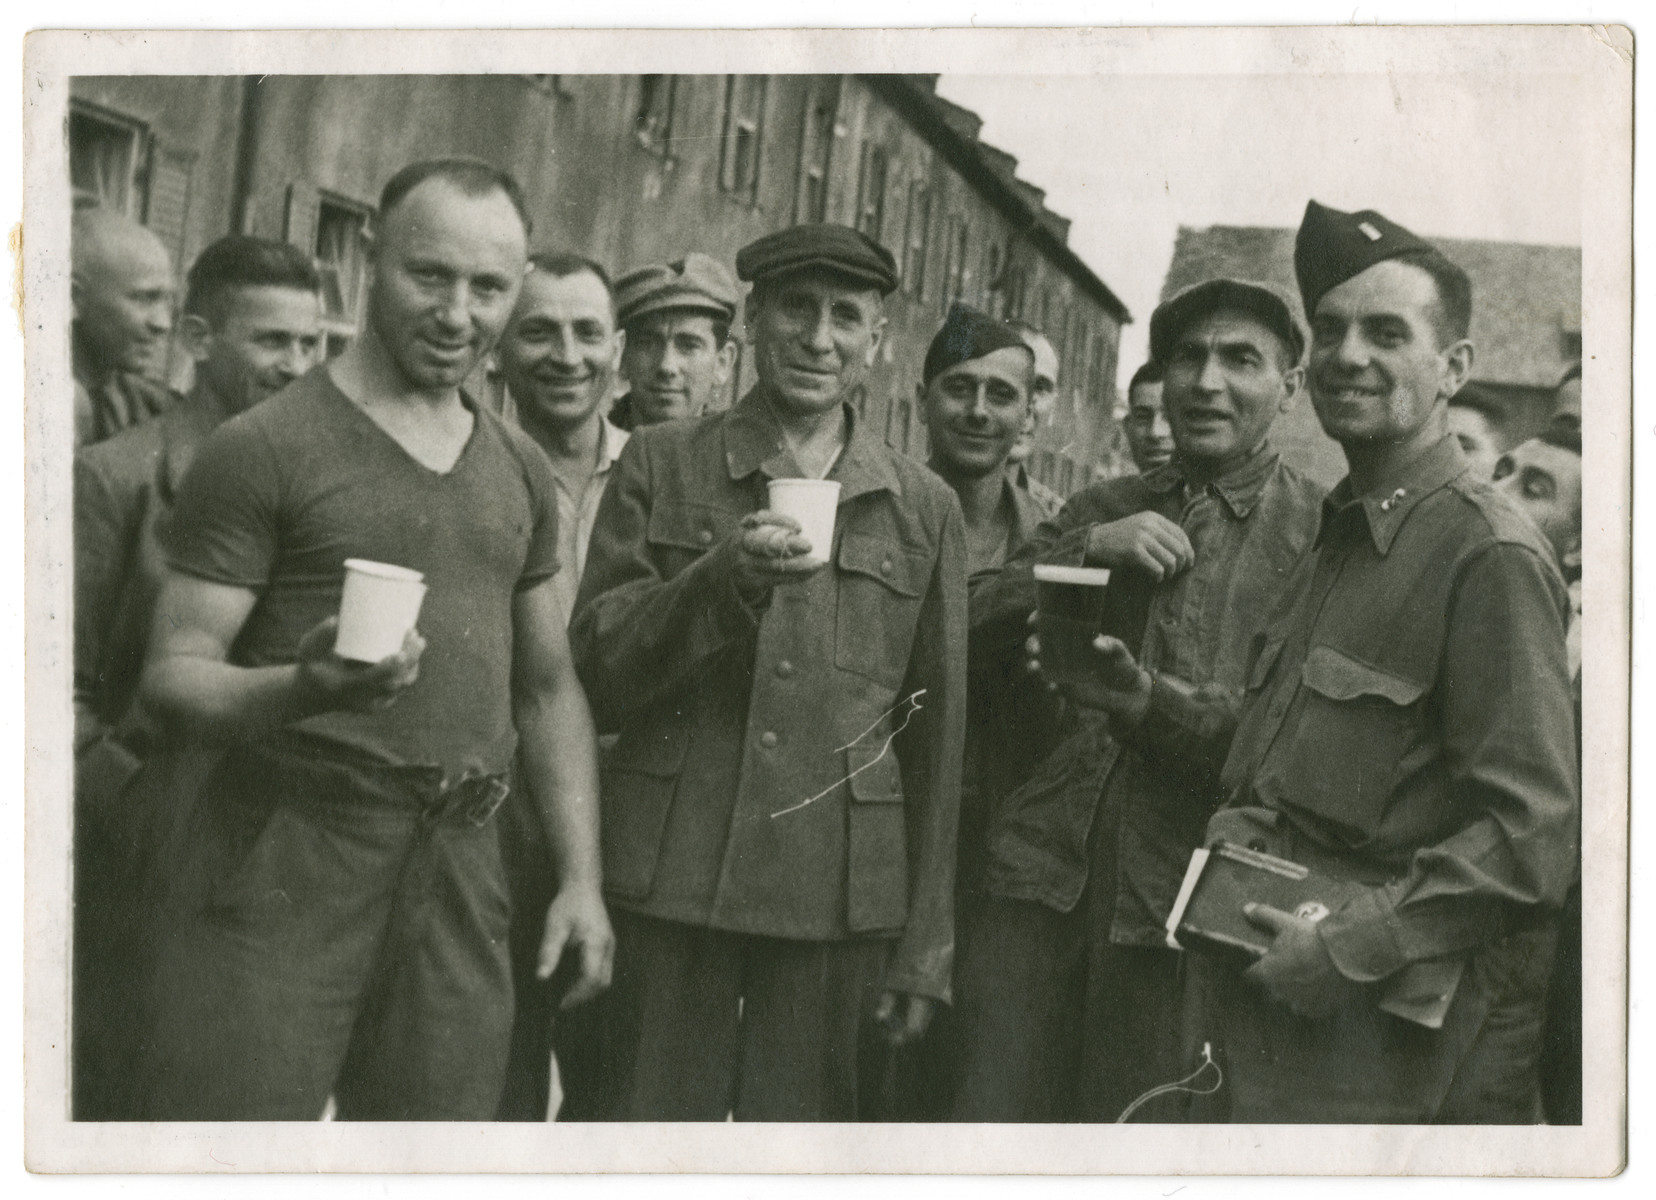 Survivors of a Kaufering camp [perhaps Landsberg] pose with American soldiers after liberation.